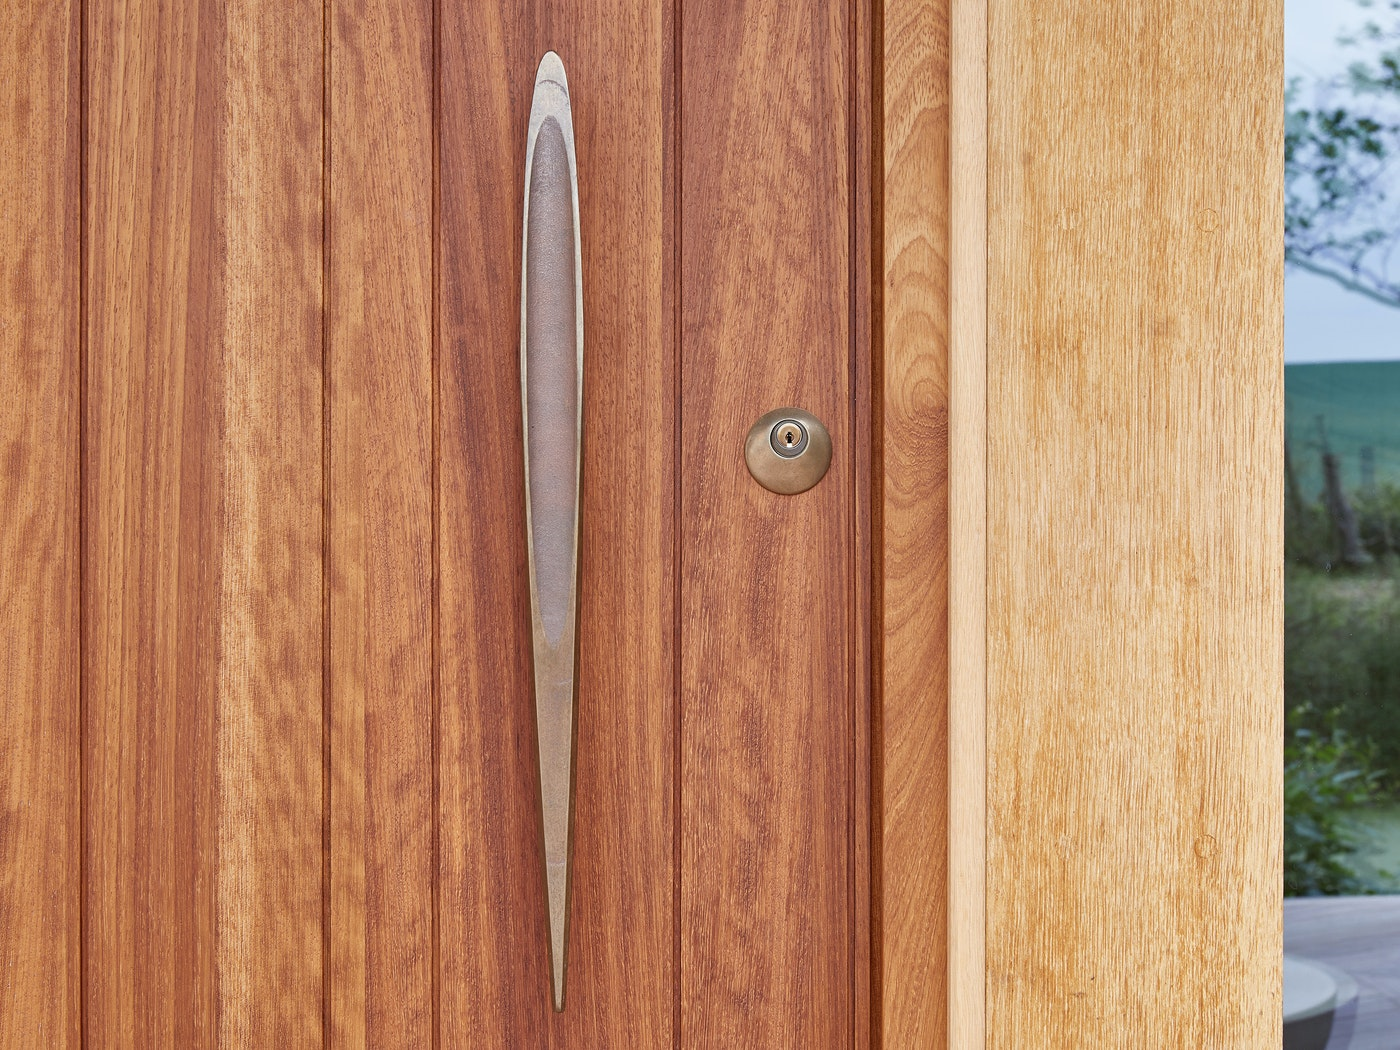 Our bronze pull handle finishes the look